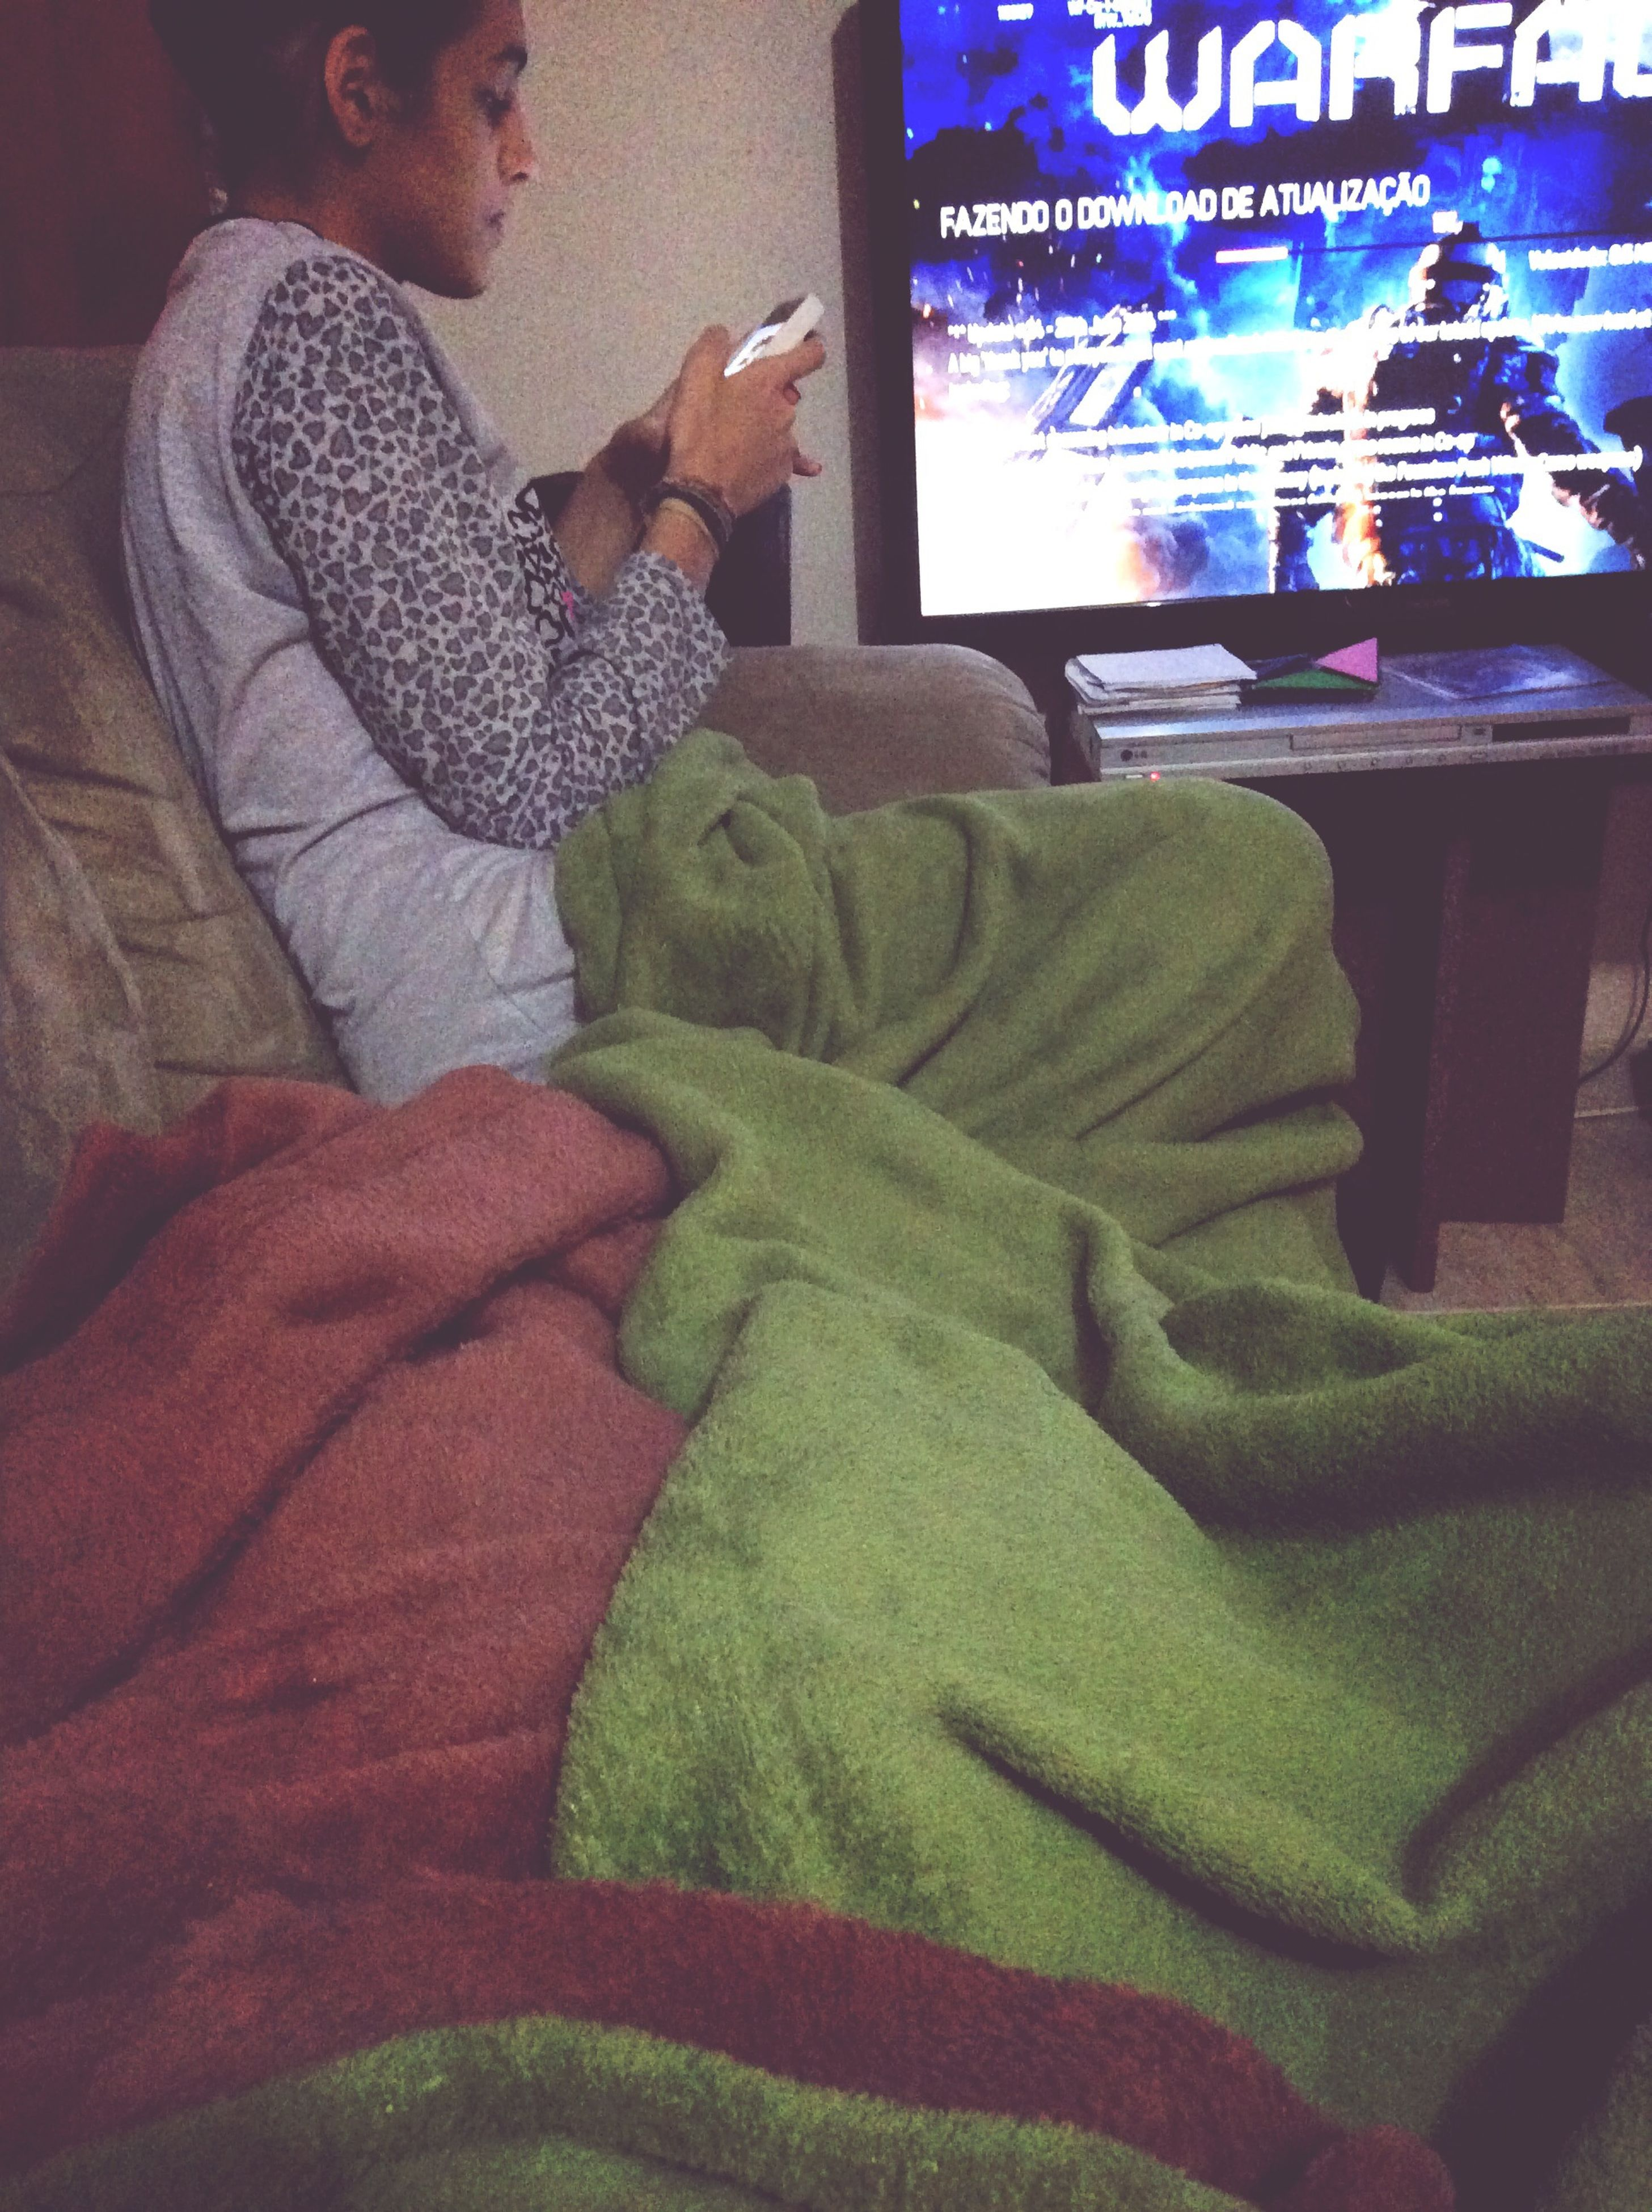 indoors, communication, text, lifestyles, casual clothing, men, home interior, leisure activity, western script, relaxation, sitting, bed, holding, waist up, non-western script, day, high angle view